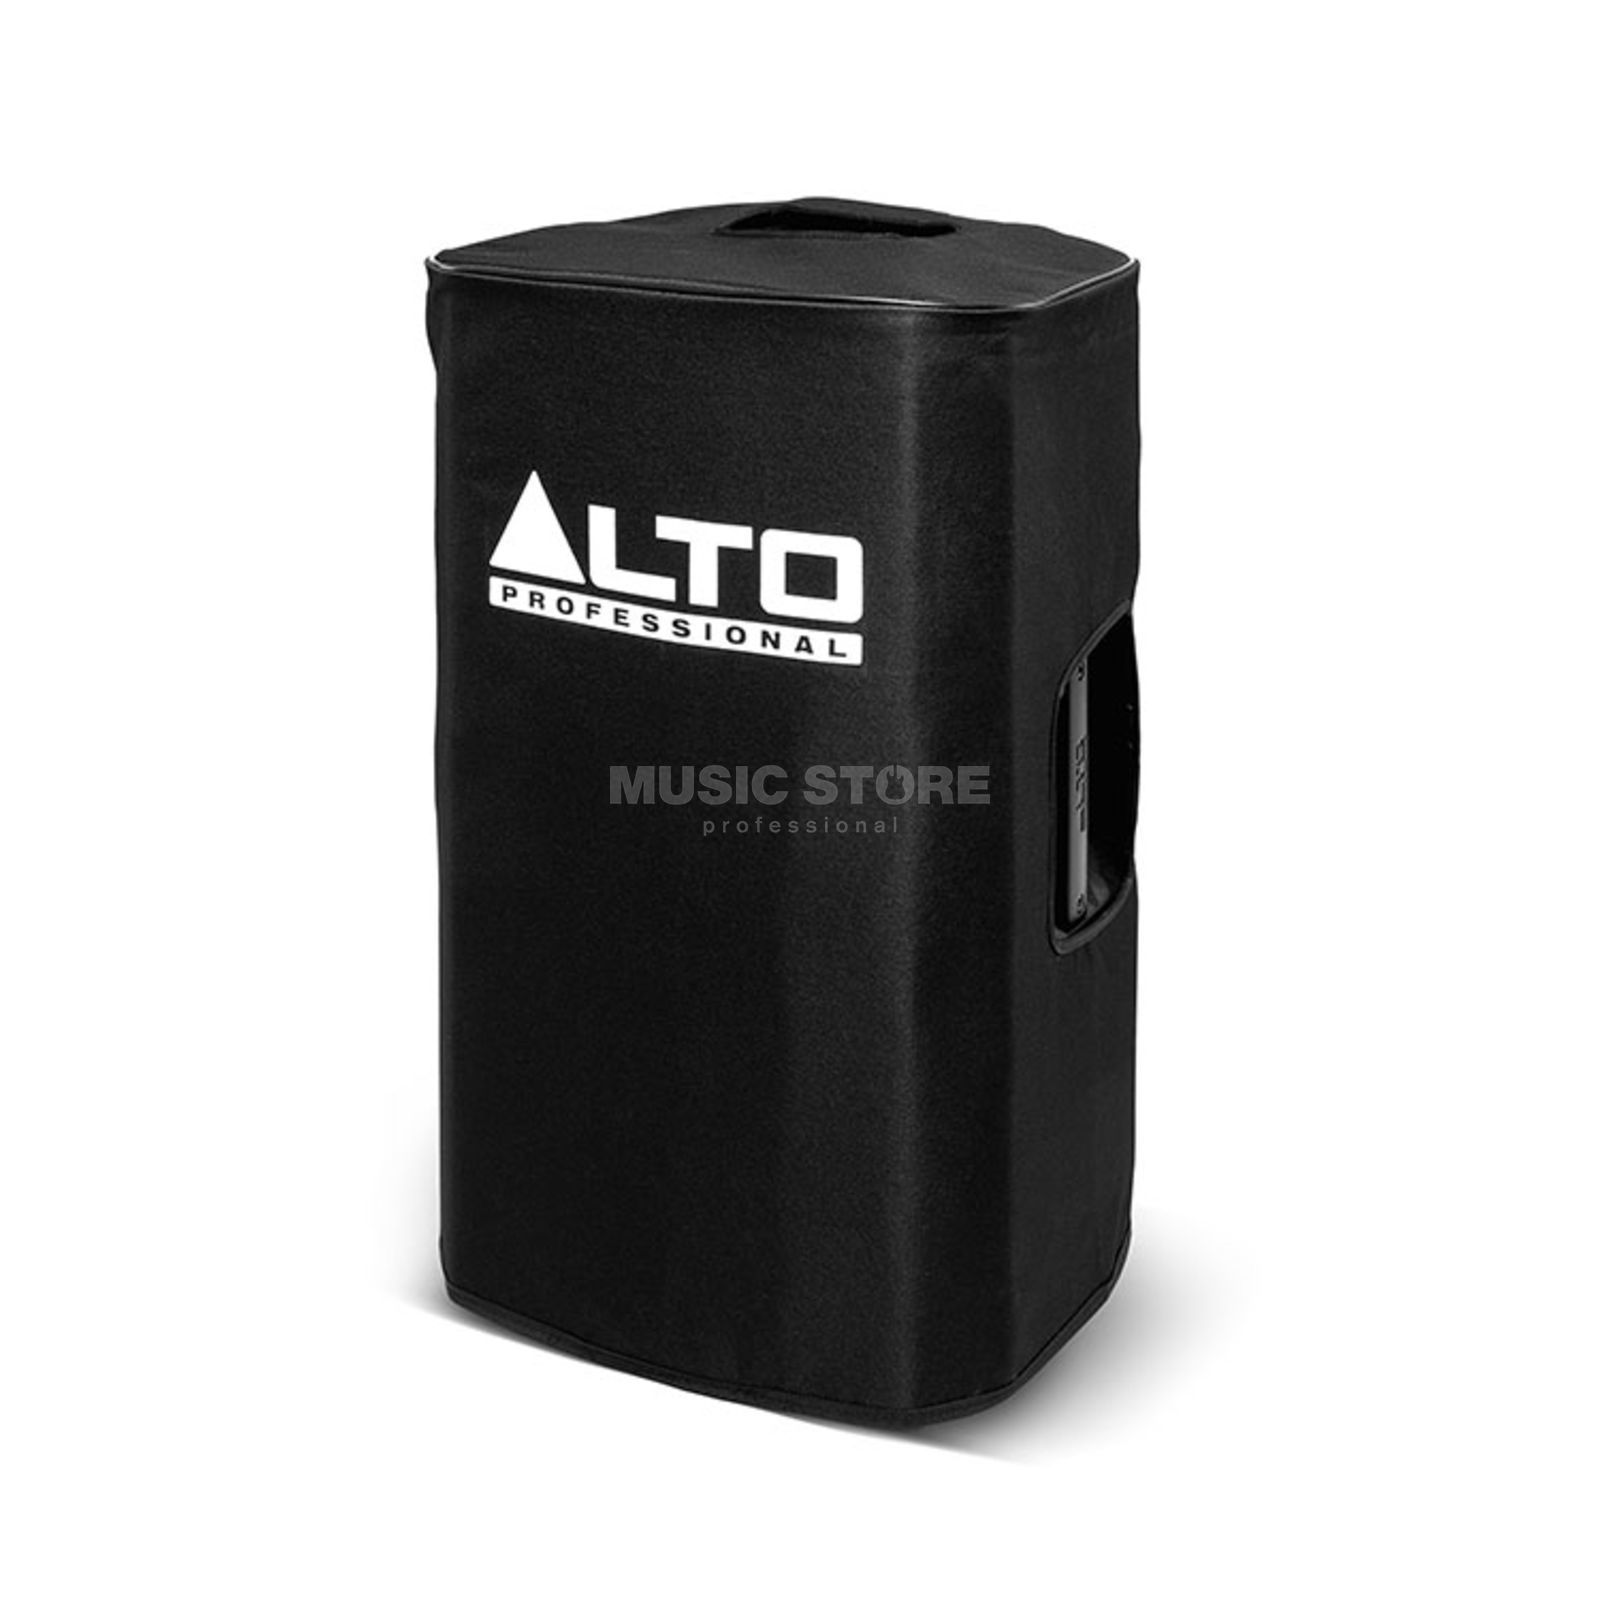 ALTO Cover TS 212 Product Image